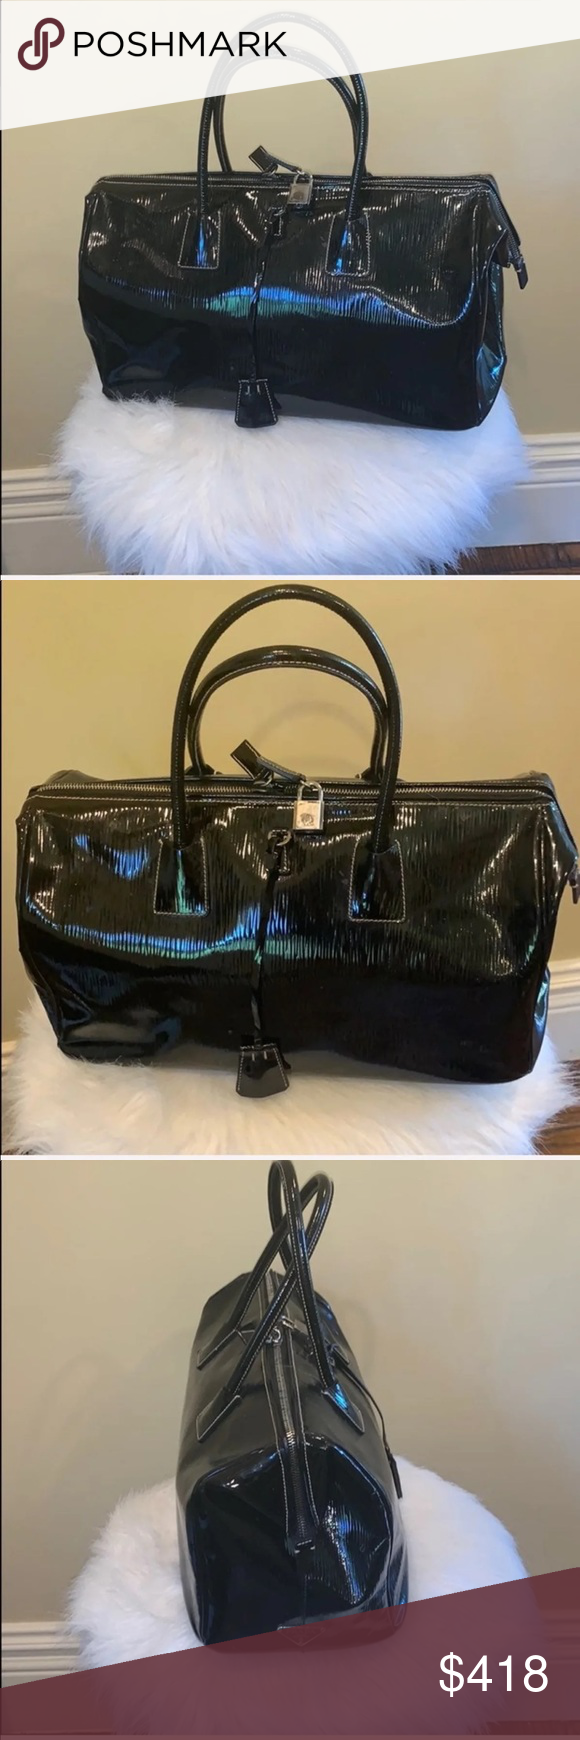 Photo of Authentic patent leather Prada bag Comes with authenticity card, mint condition….